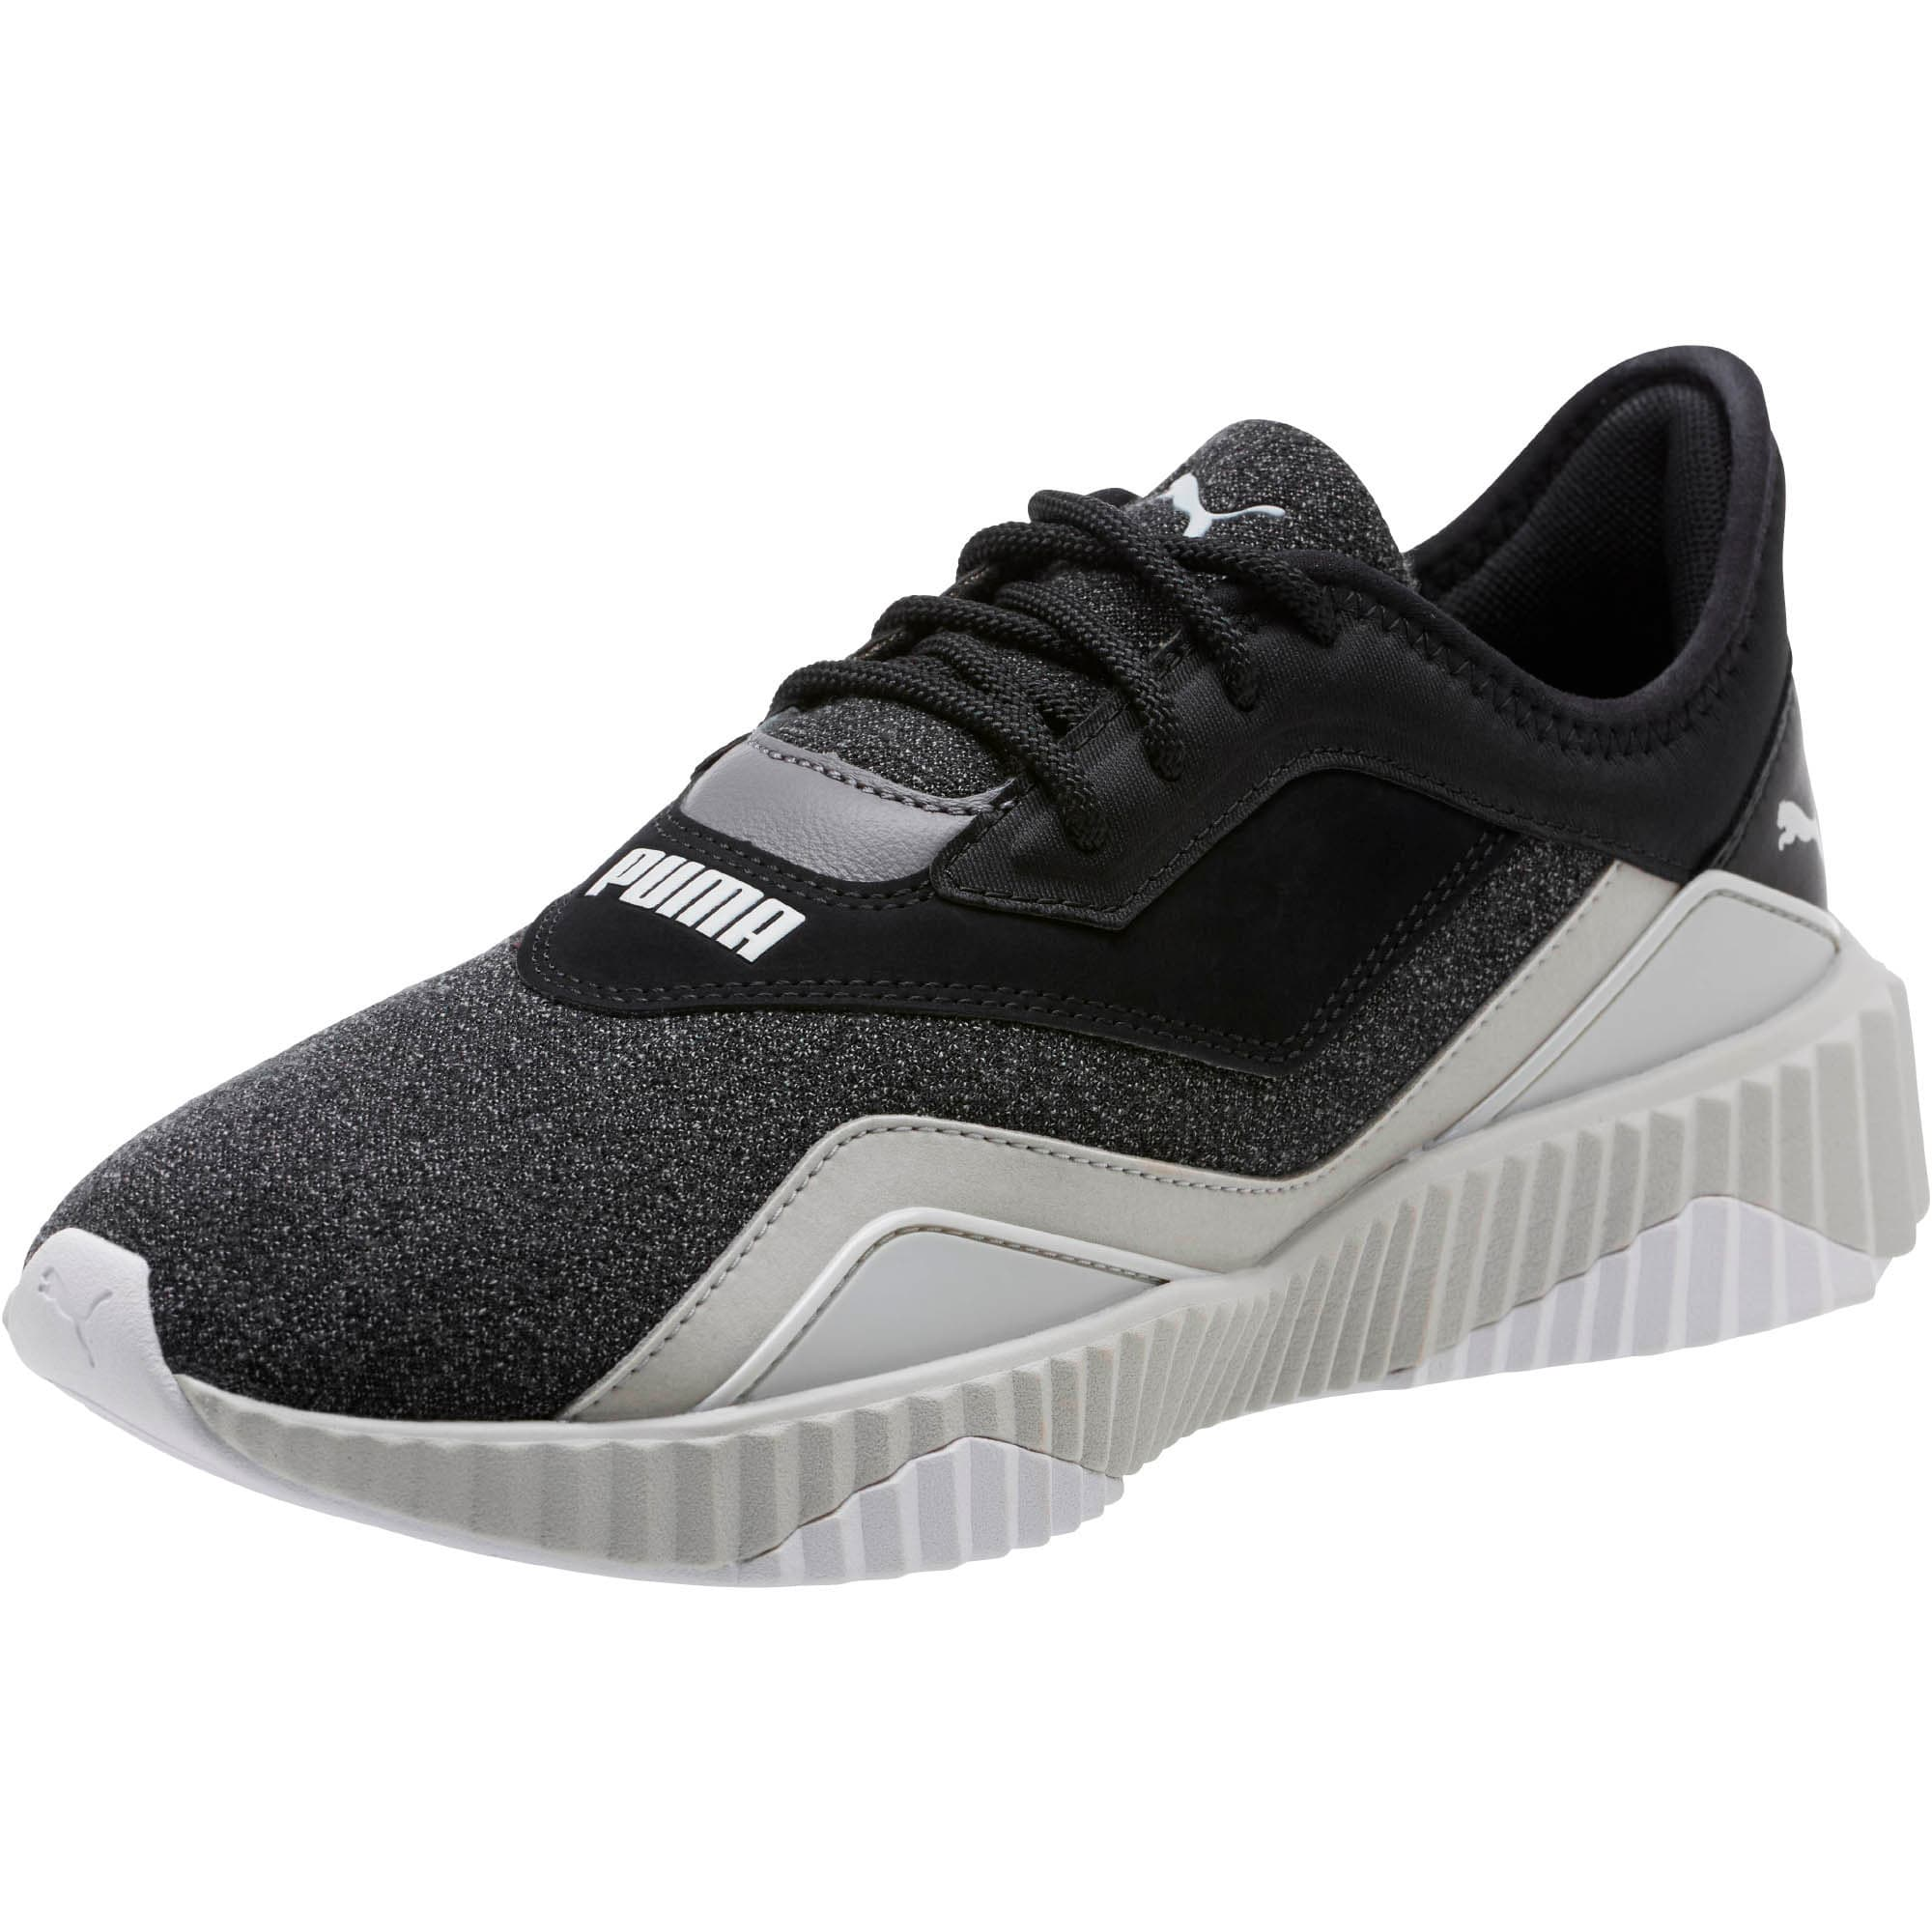 Thumbnail 1 of Defy Stitched Z Women's Training Shoes, Puma Black-Glacier Gray, medium